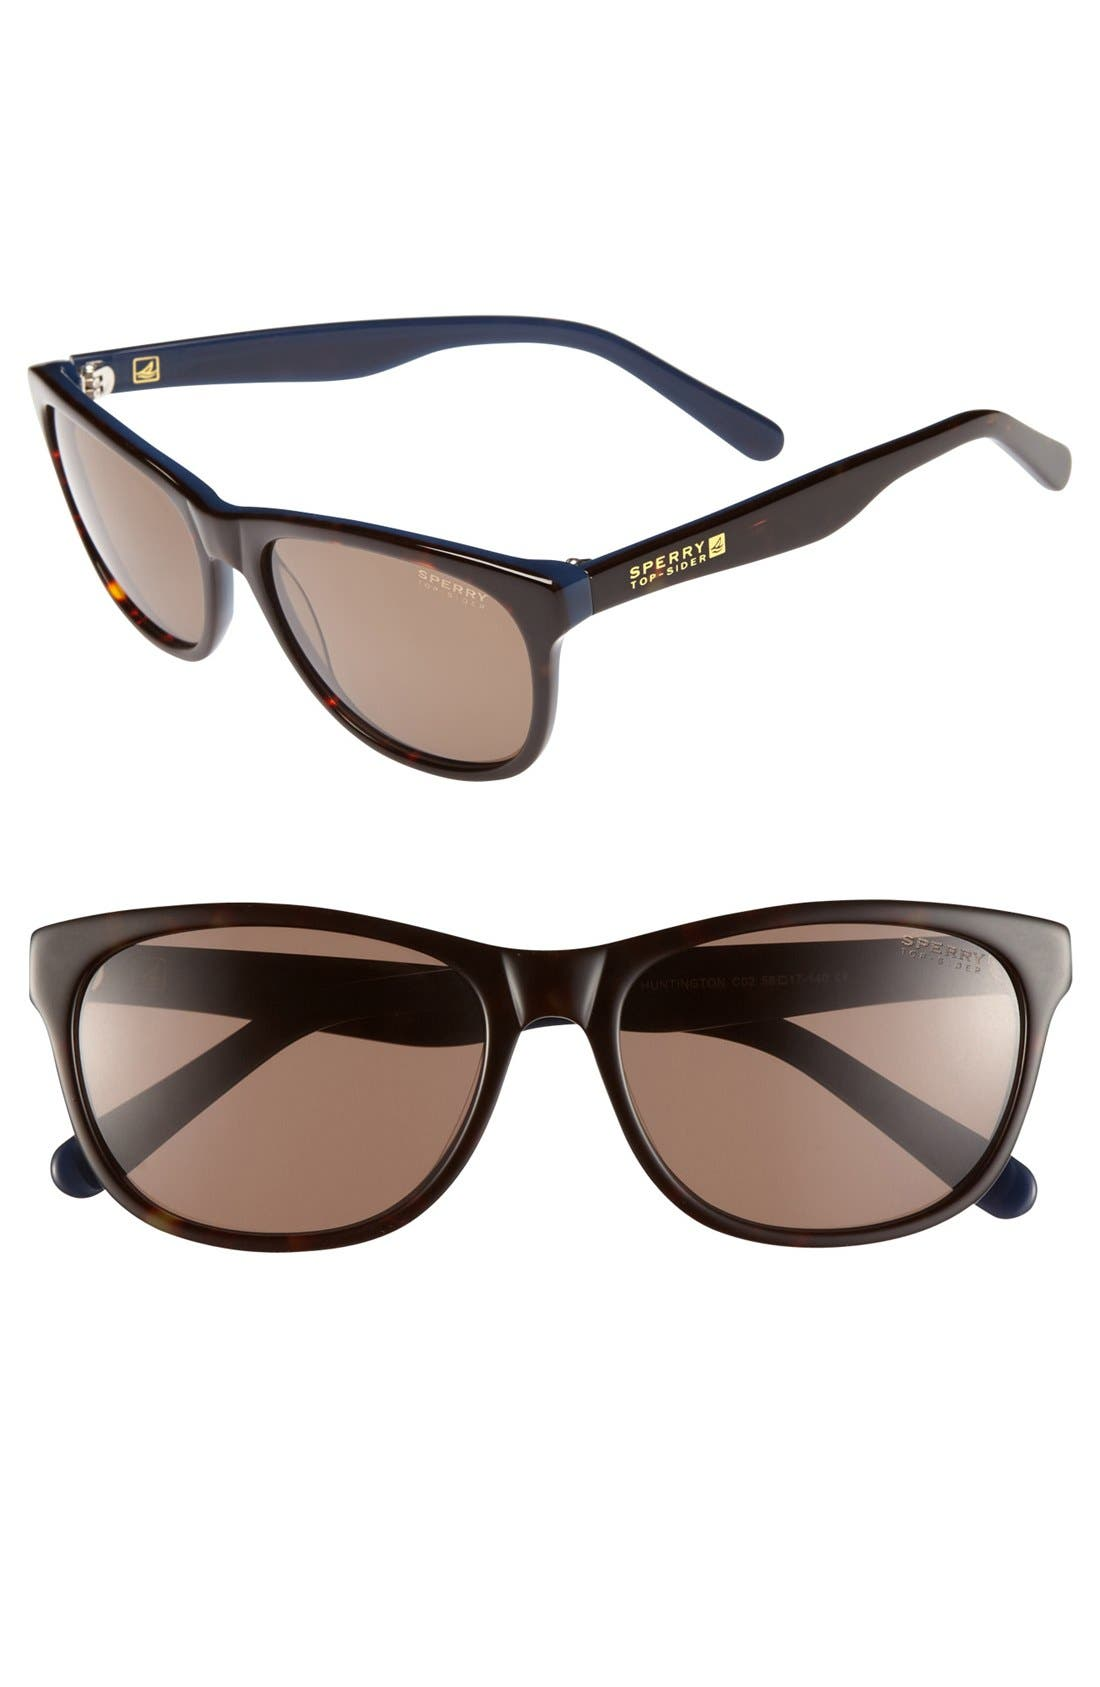 Alternate Image 1 Selected - Sperry Top-Sider® 'Huntington' 56mm Sunglasses (Online Only)